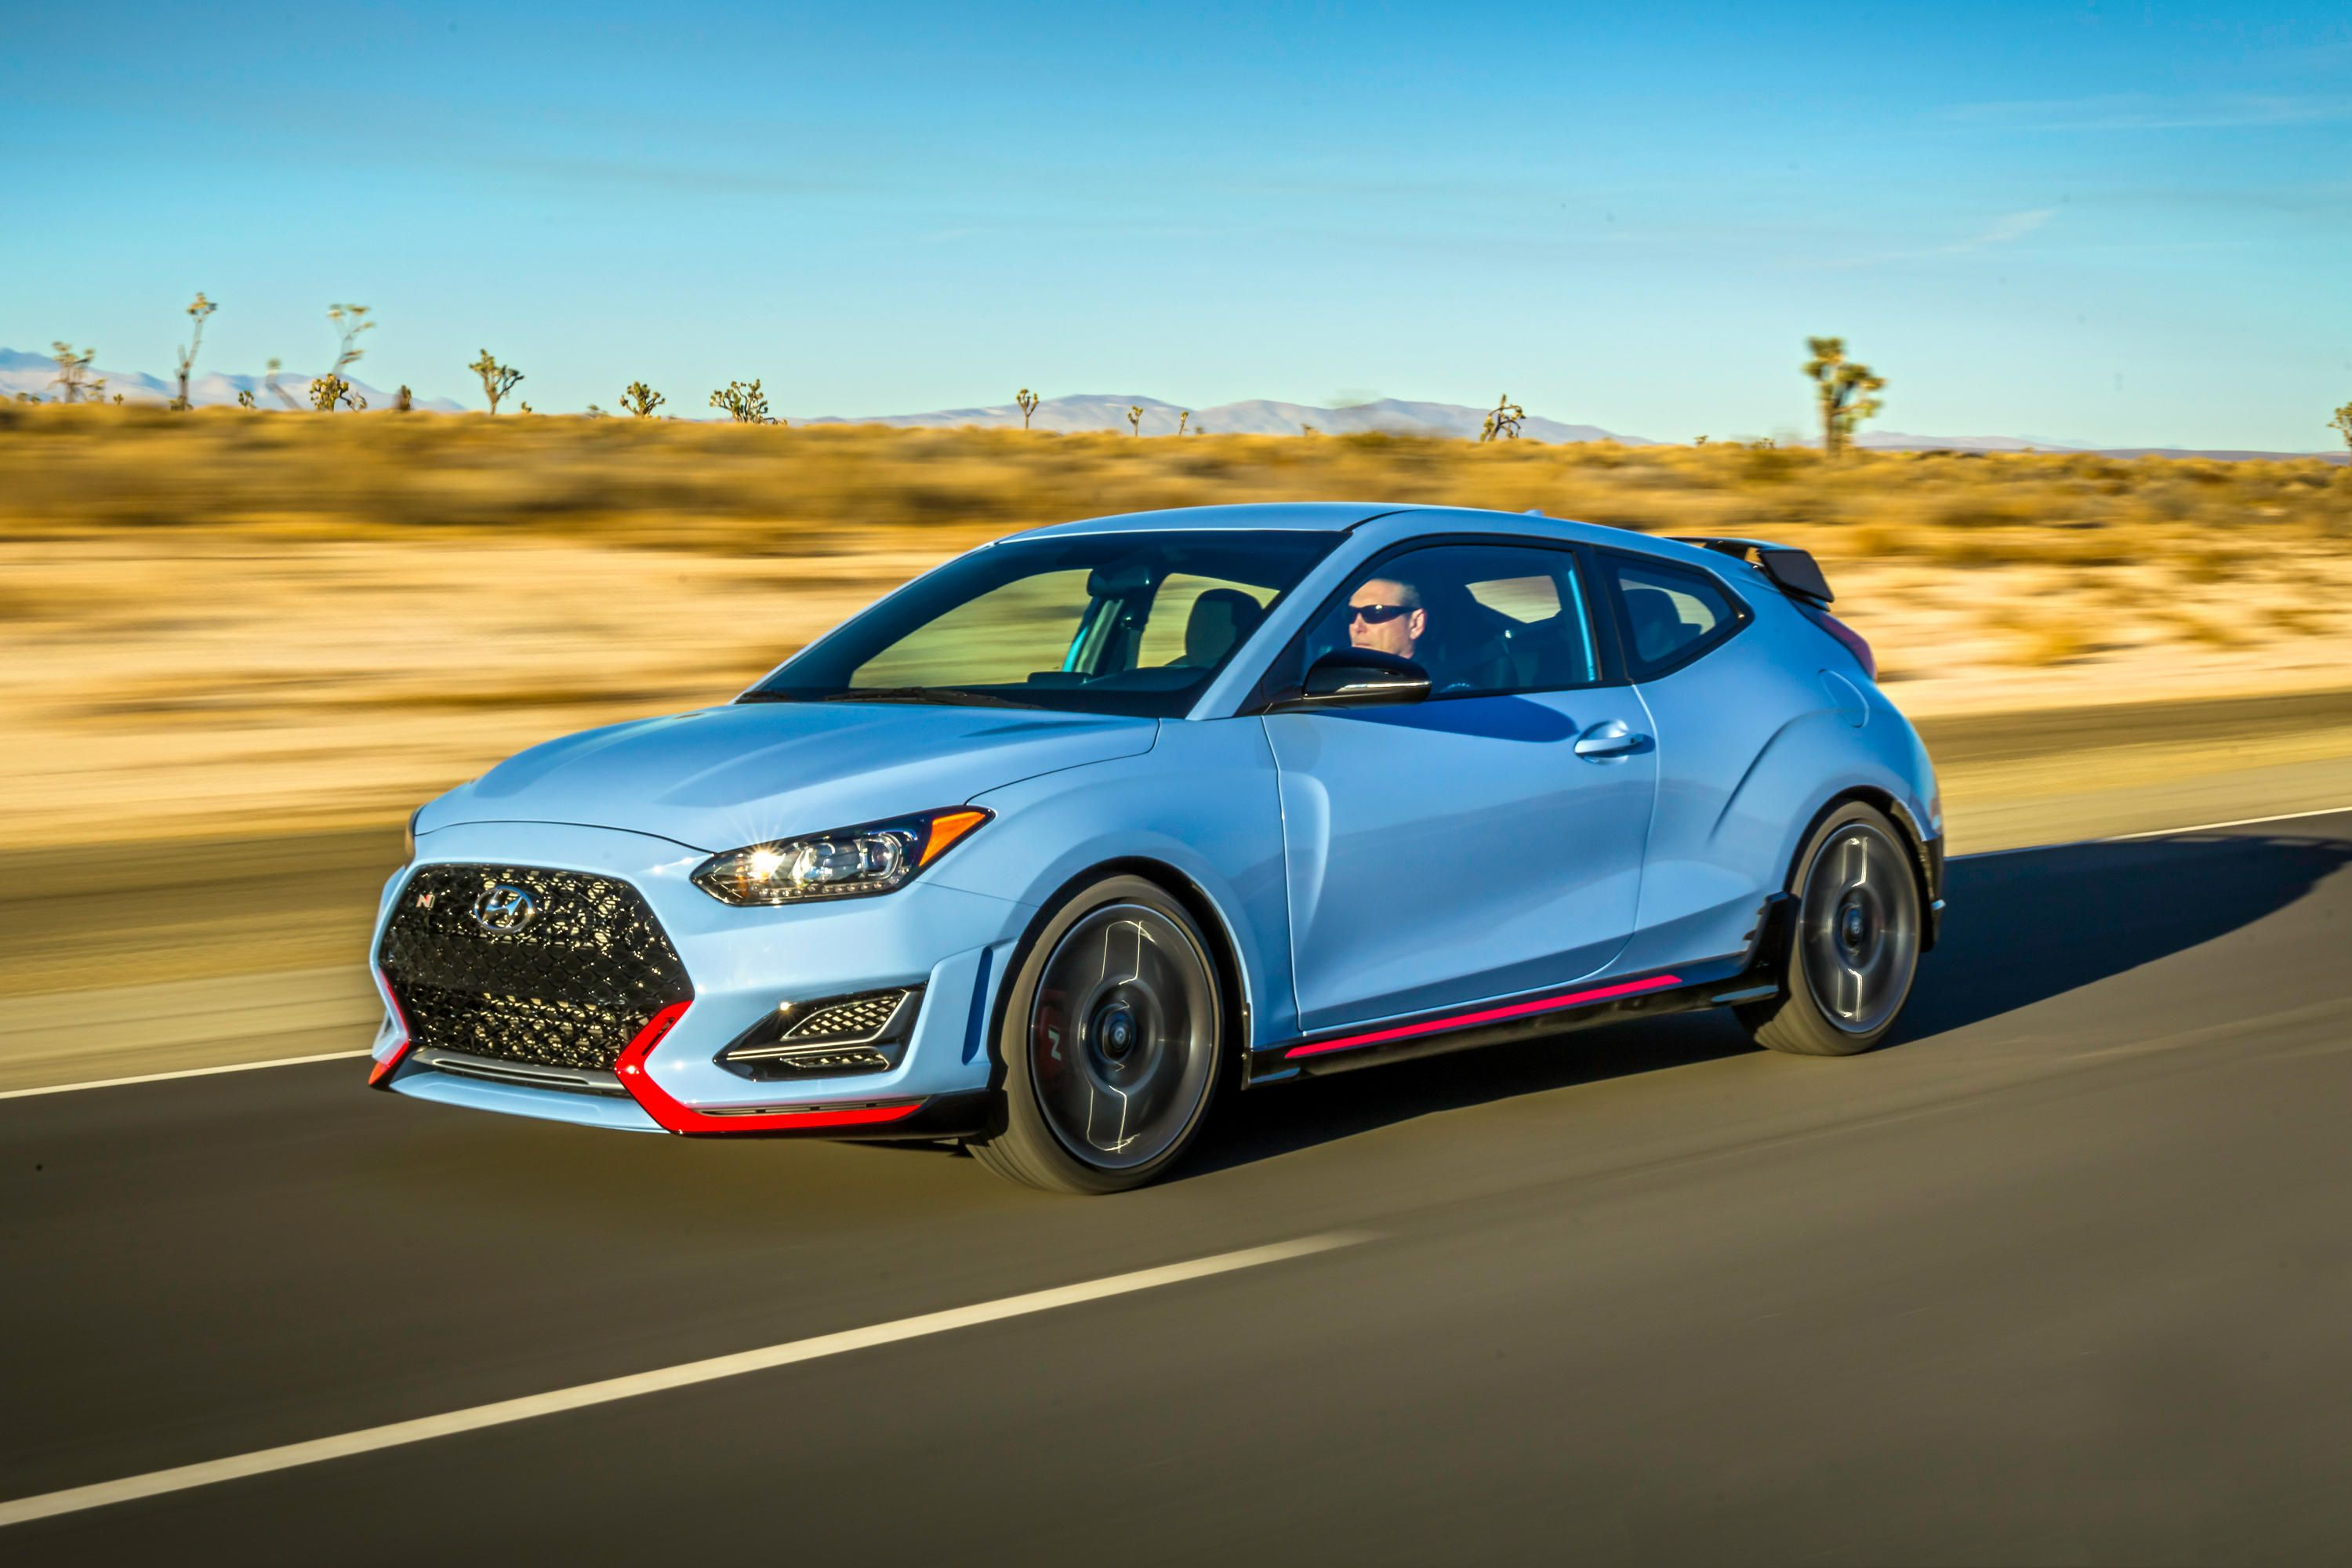 drive edition rally test of veloster review hyundai expert